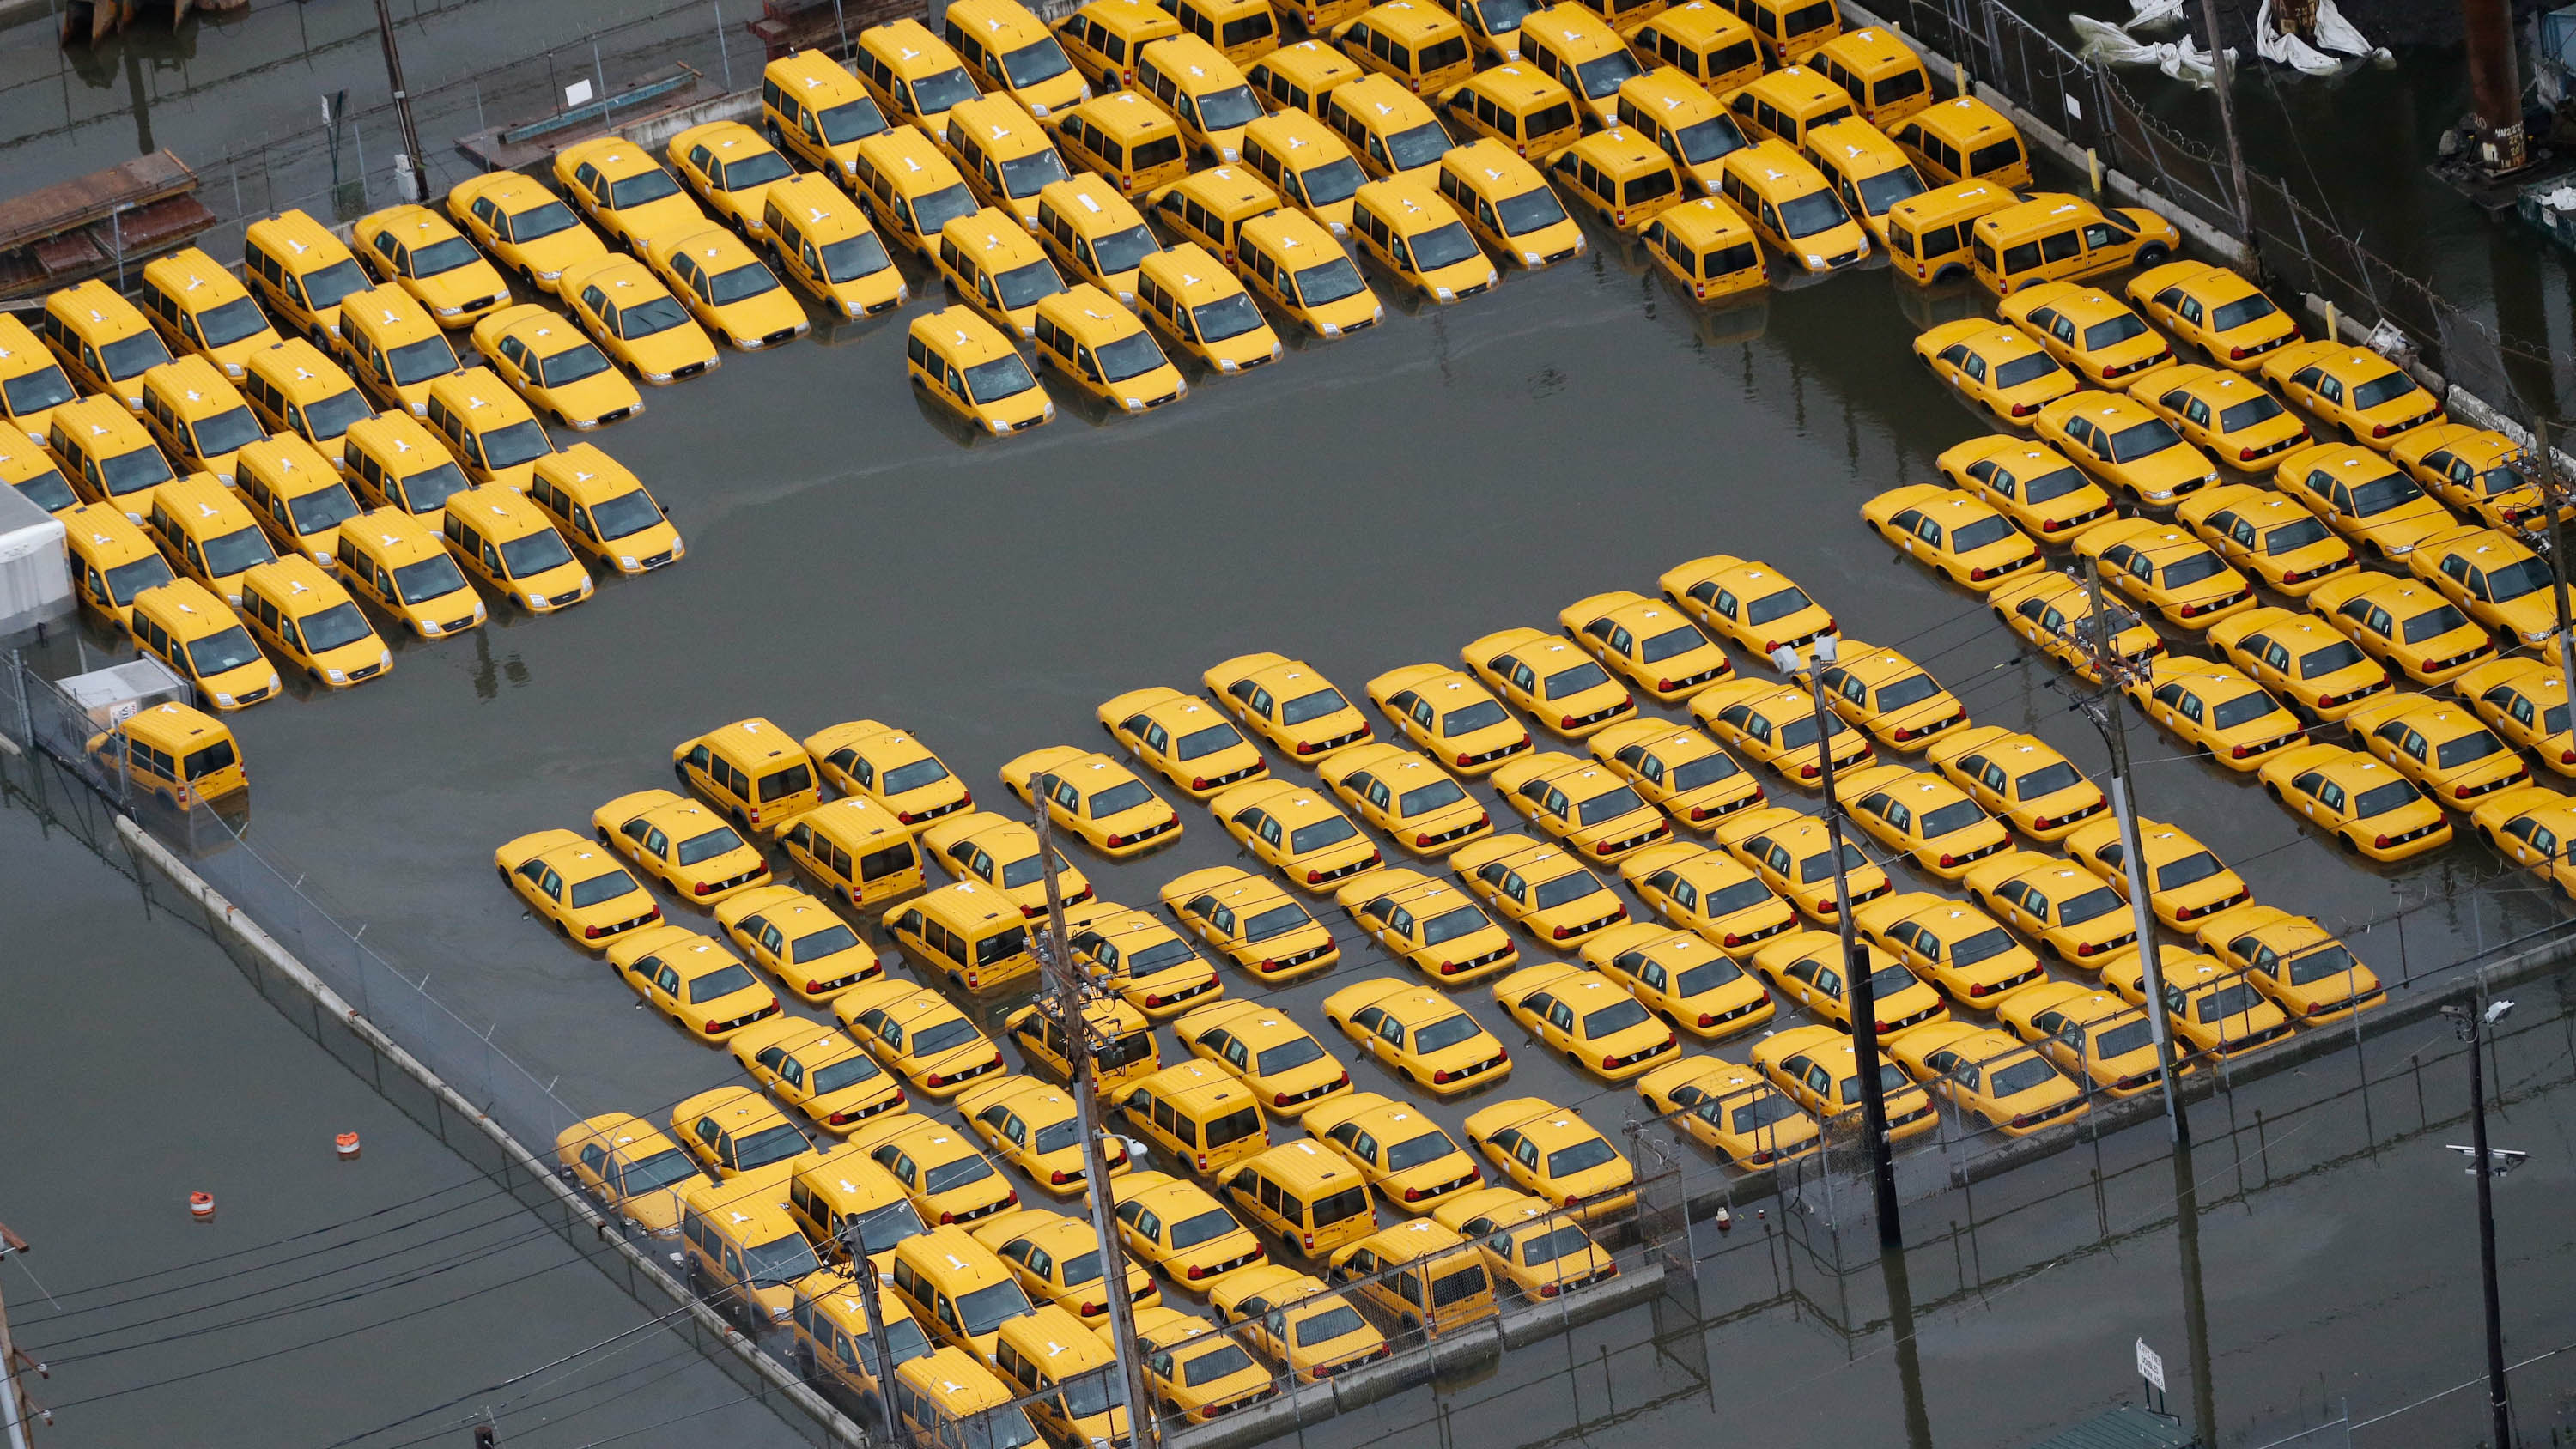 Submerged Taxis